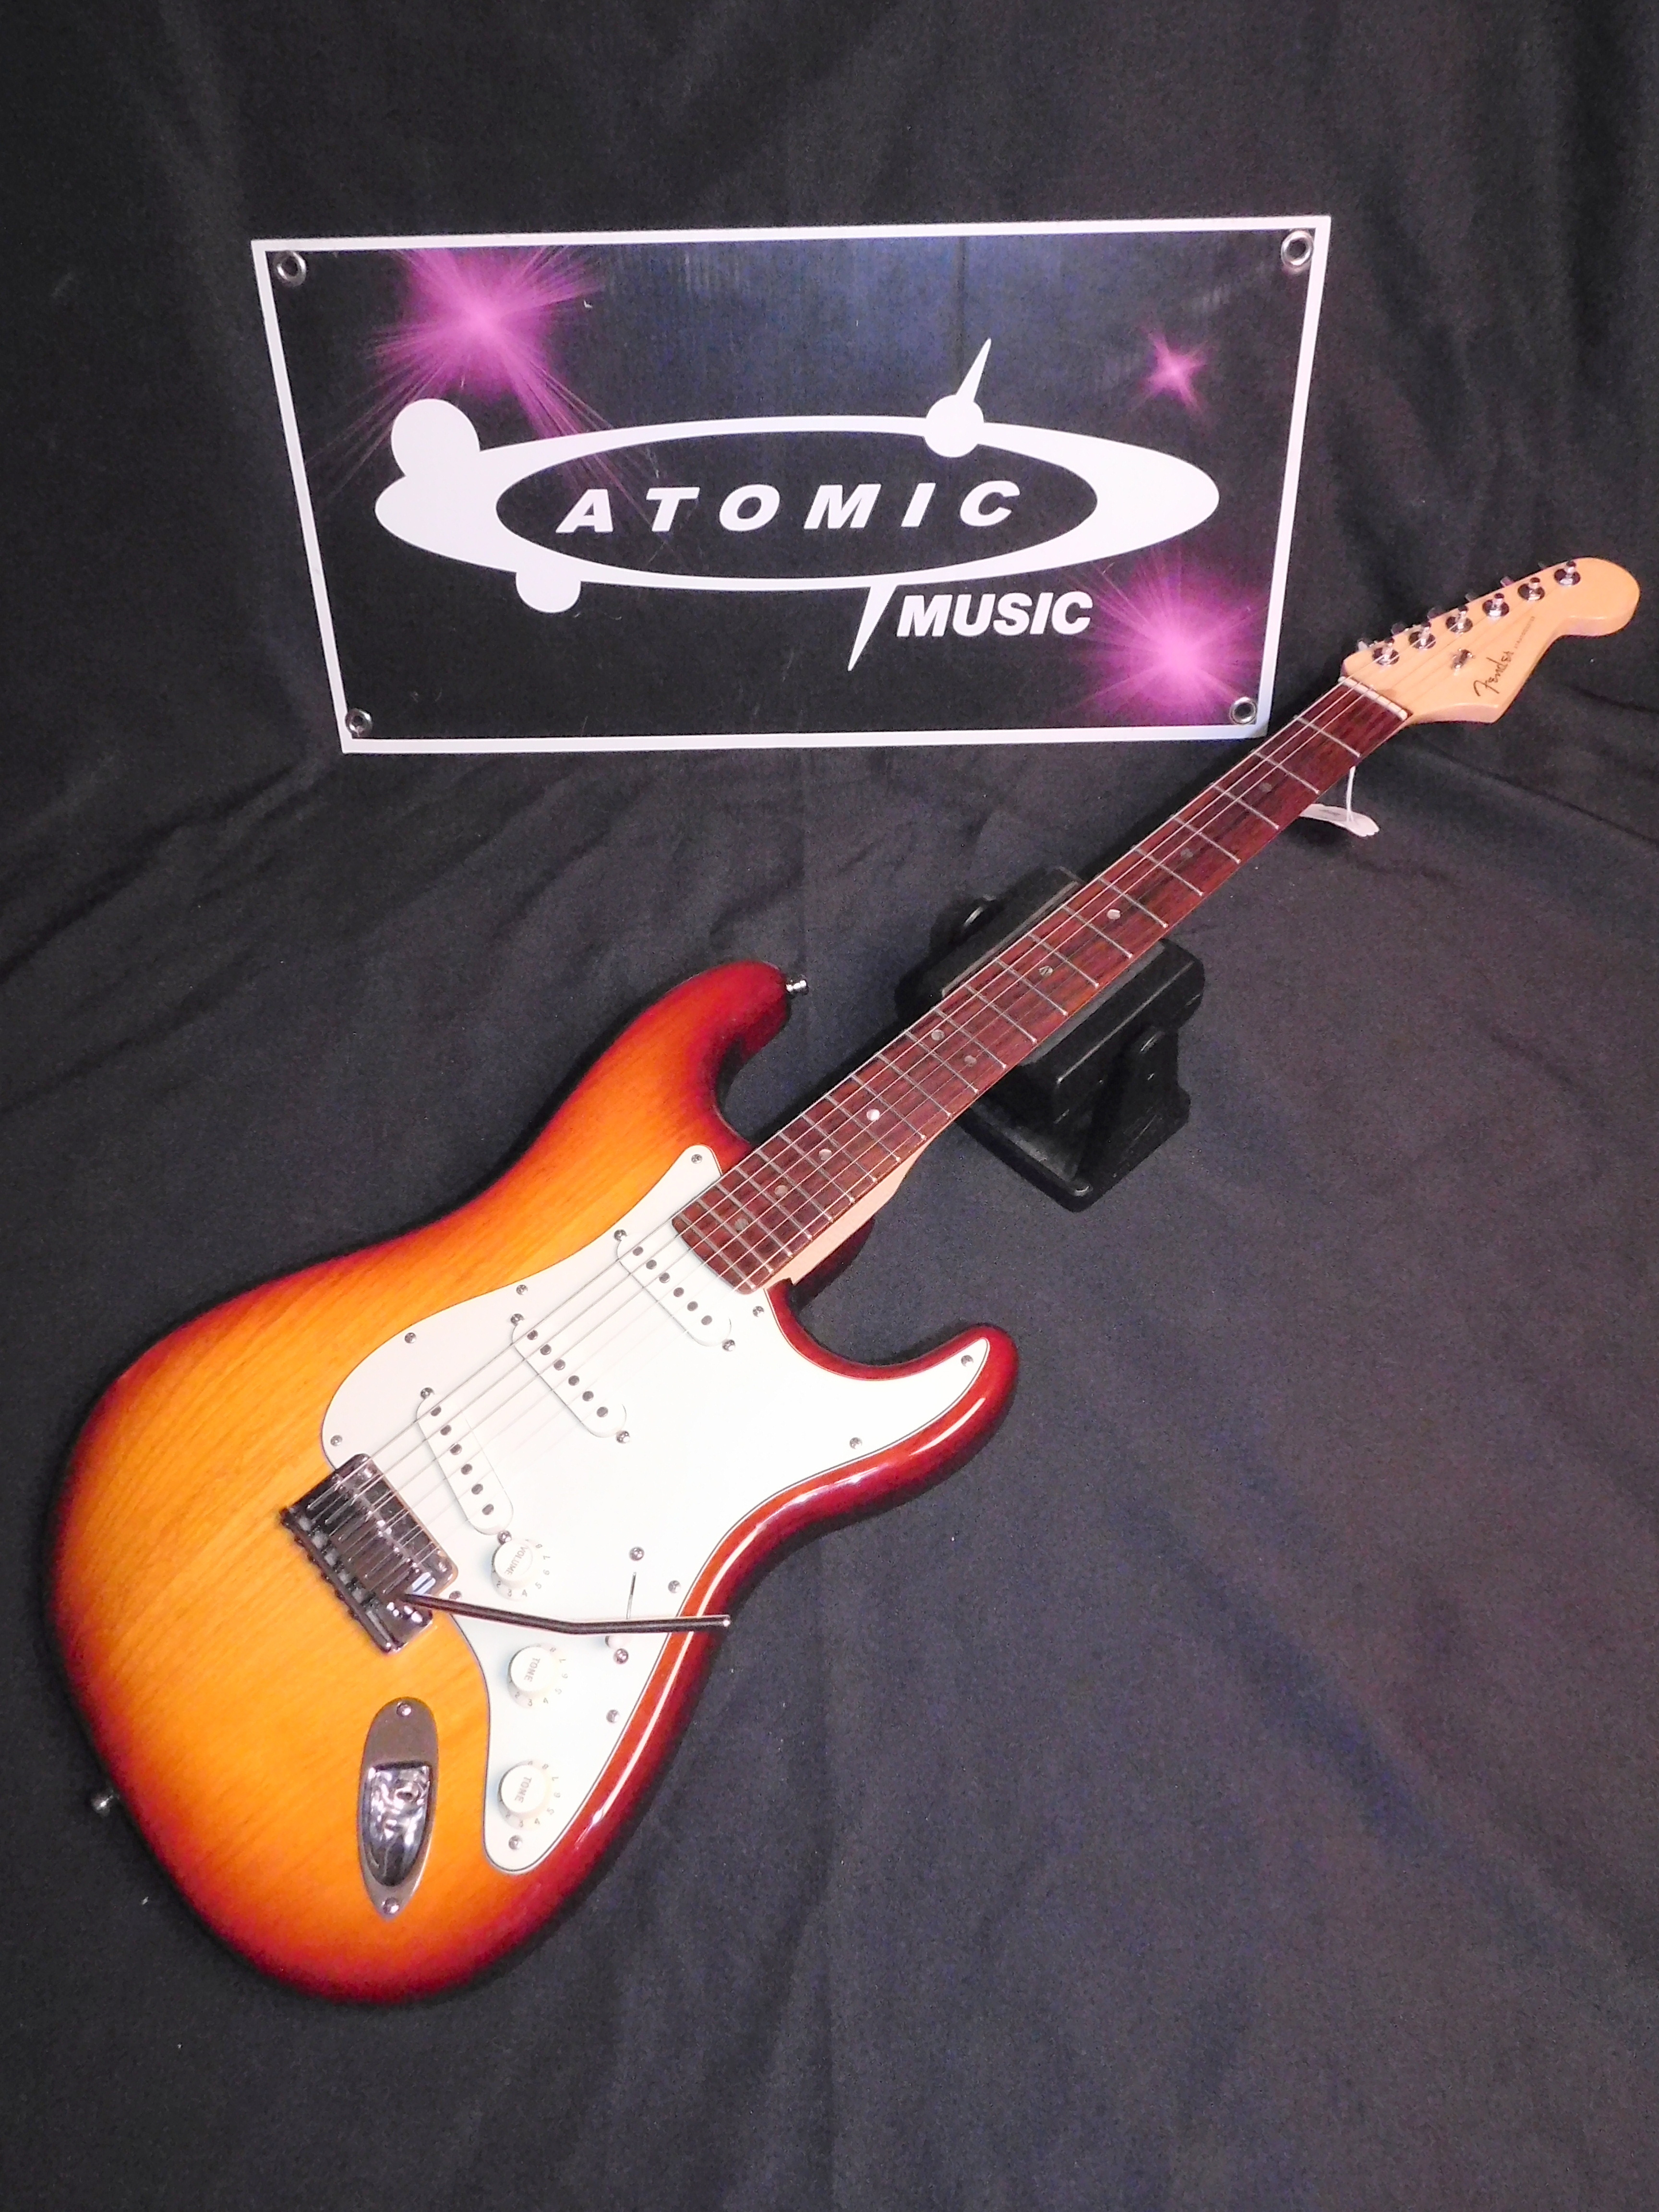 FENDER AMERICAN DELUXE STRATOCASTER - DLX STRAT w/HSC